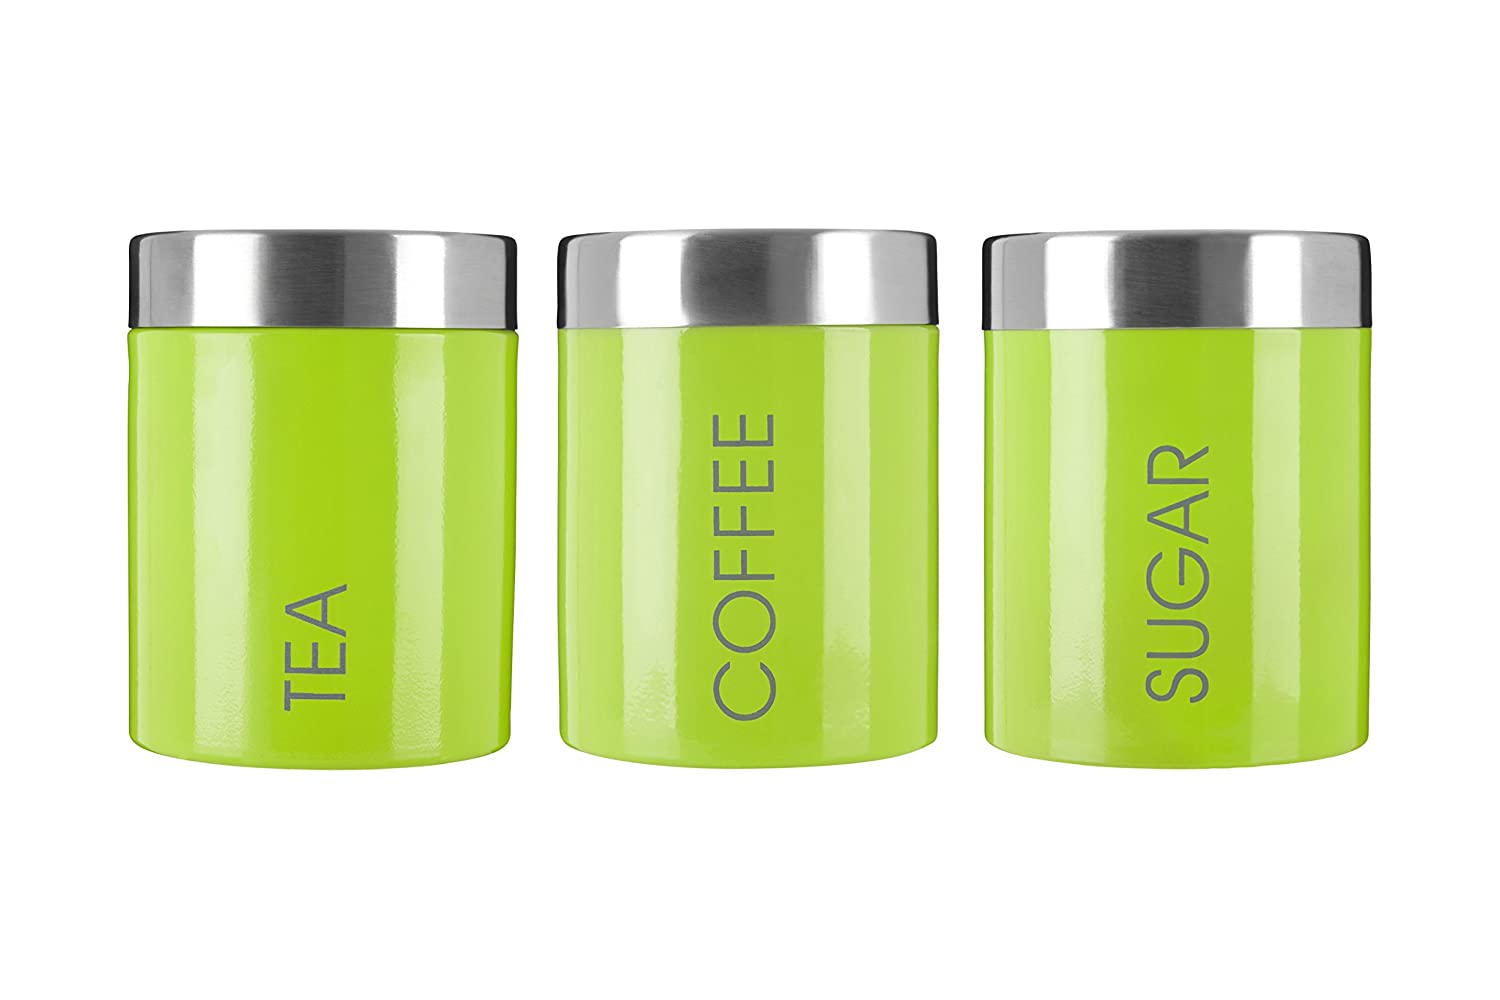 Premier Housewares Liberty Tea Coffee and Sugar Canisters - Set of 3, Lime Green 0507814